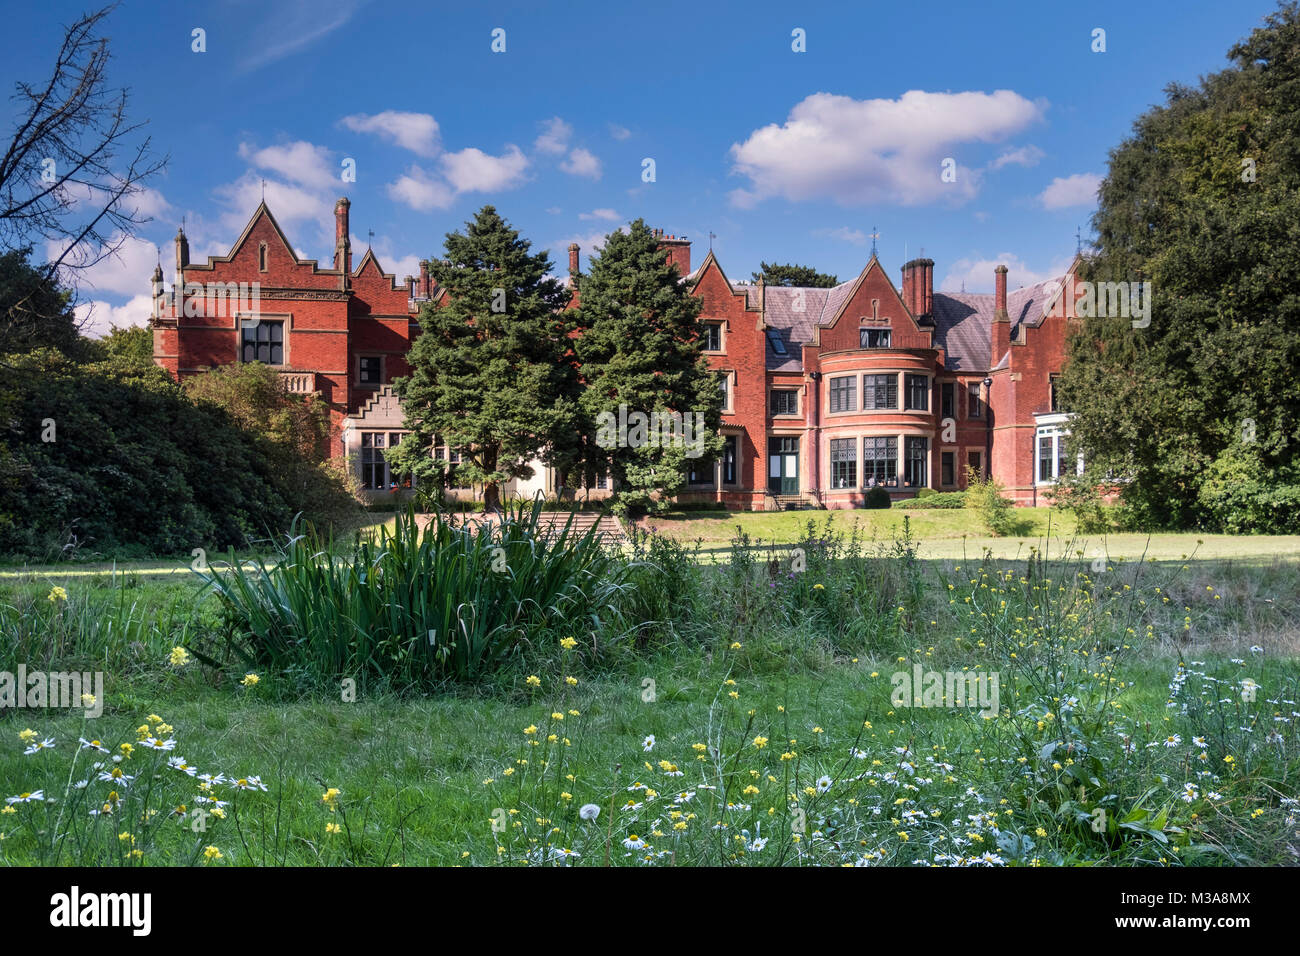 Abney Hall, Abney Hall Park, Cheadle, near Stockport, Greater Manchester, England, UK - Stock Image